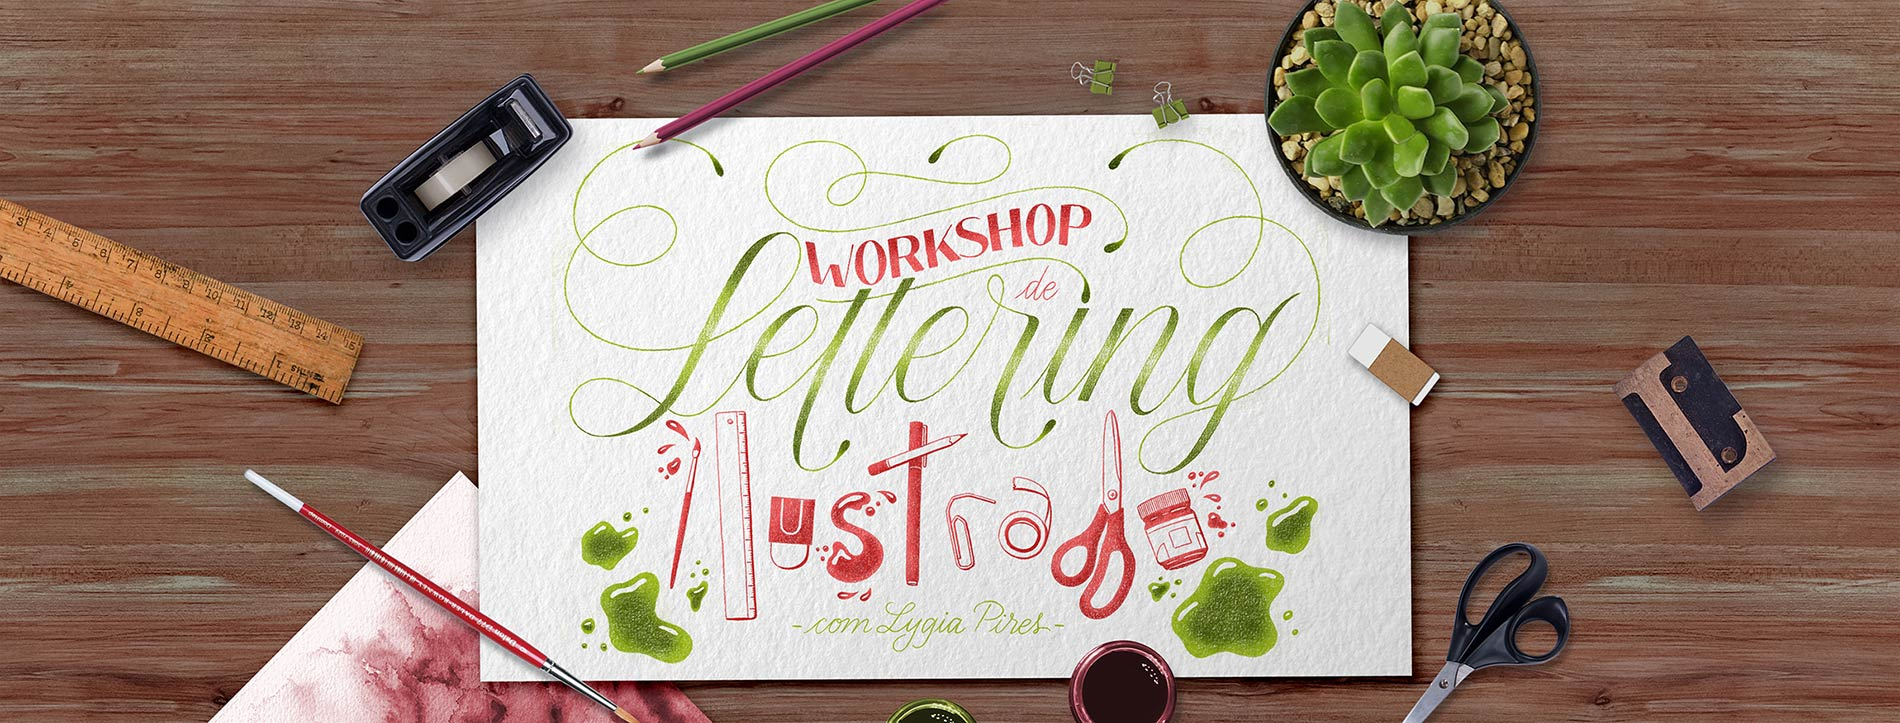 Workshop Lettering Ilustrado